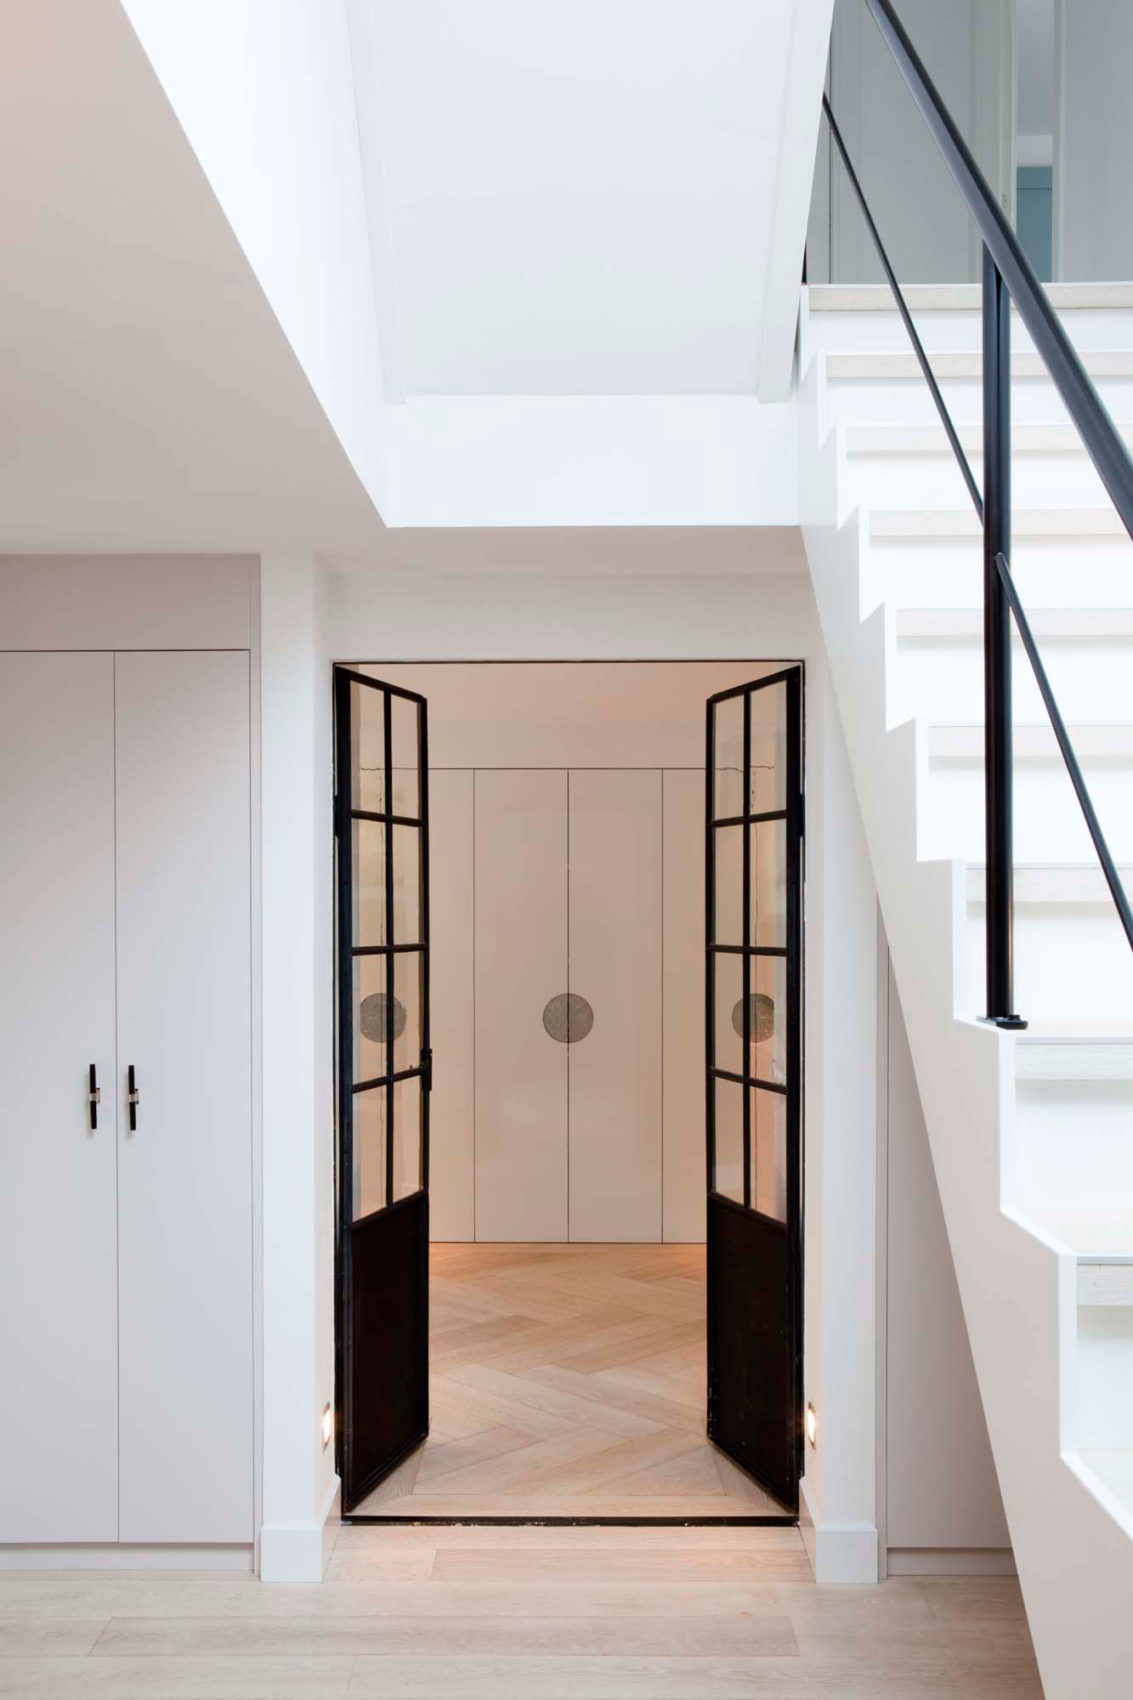 Amsterdam Residential Home by Sies Home Interior Design (6)